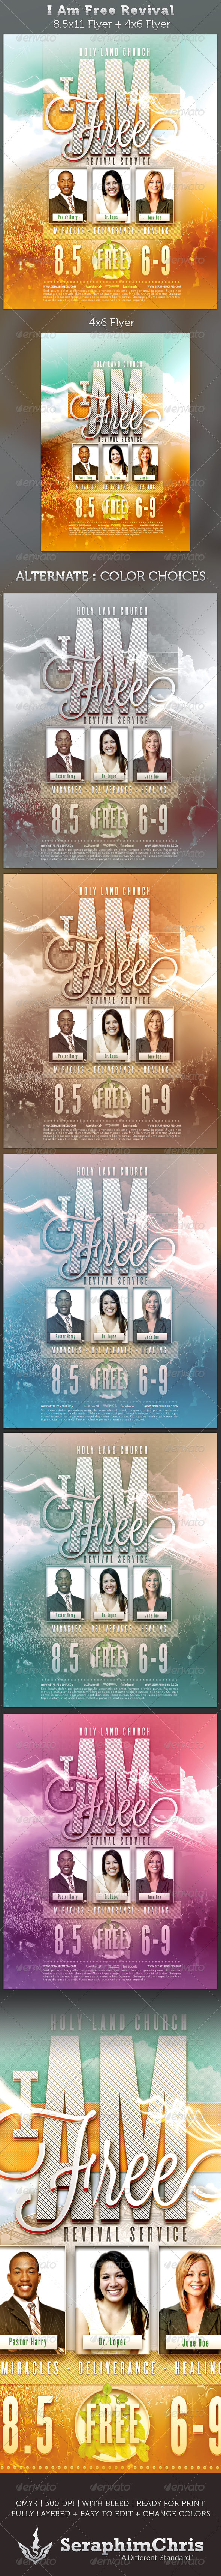 I Am Free Revival Flyer Full Page and 4x6 Template - Church Flyers